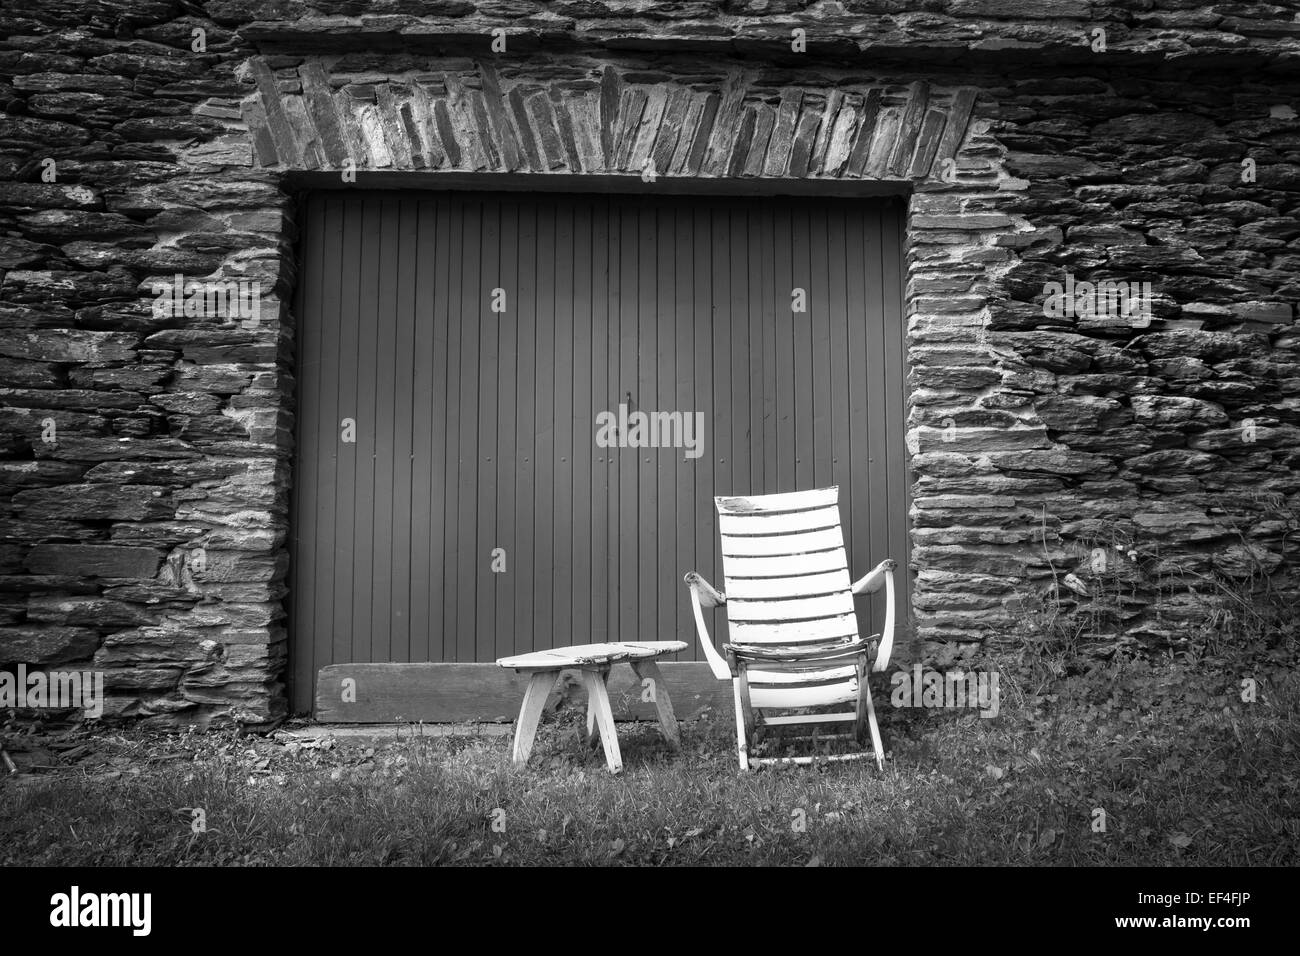 Vieille chaise mur de schiste Photo Stock